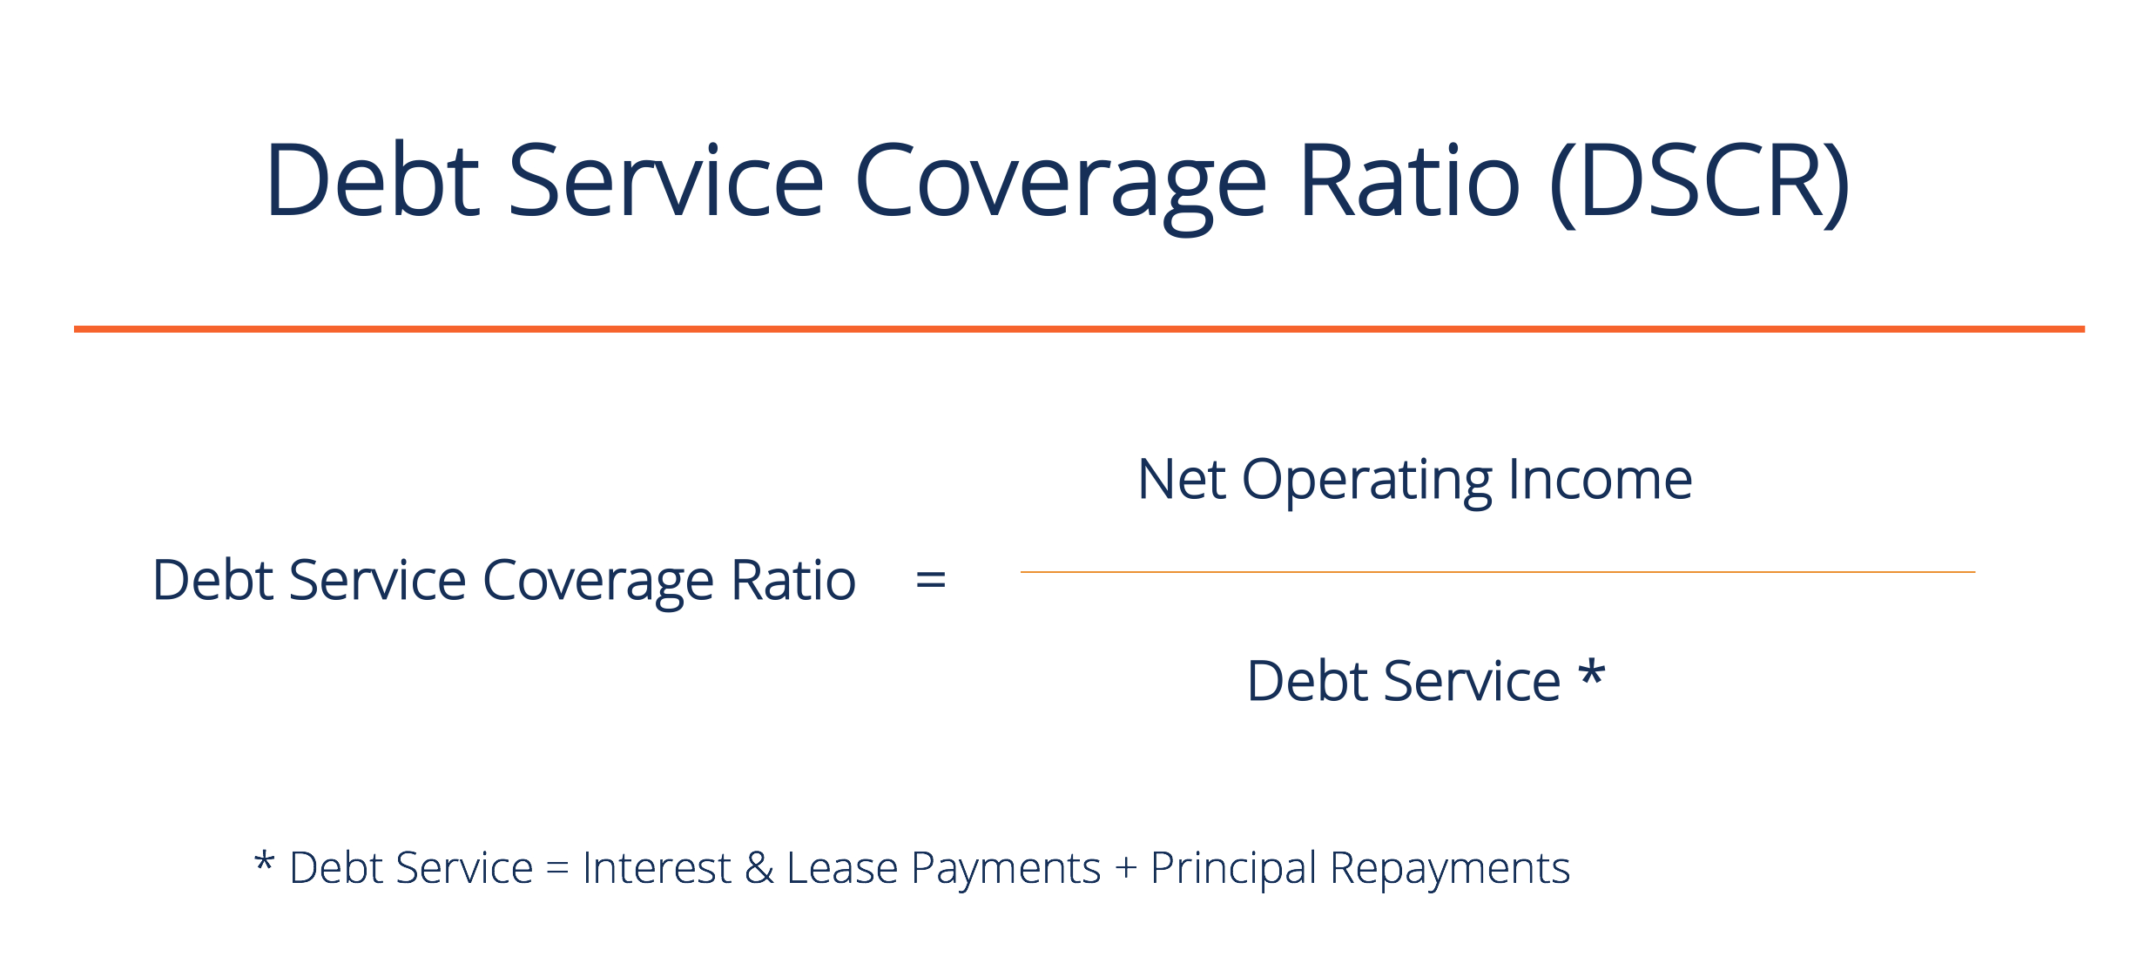 Provision Long Service Leave Calculation Spreadsheet In Calculate The Debt Service Coverage Ratio  Examples With Solutions